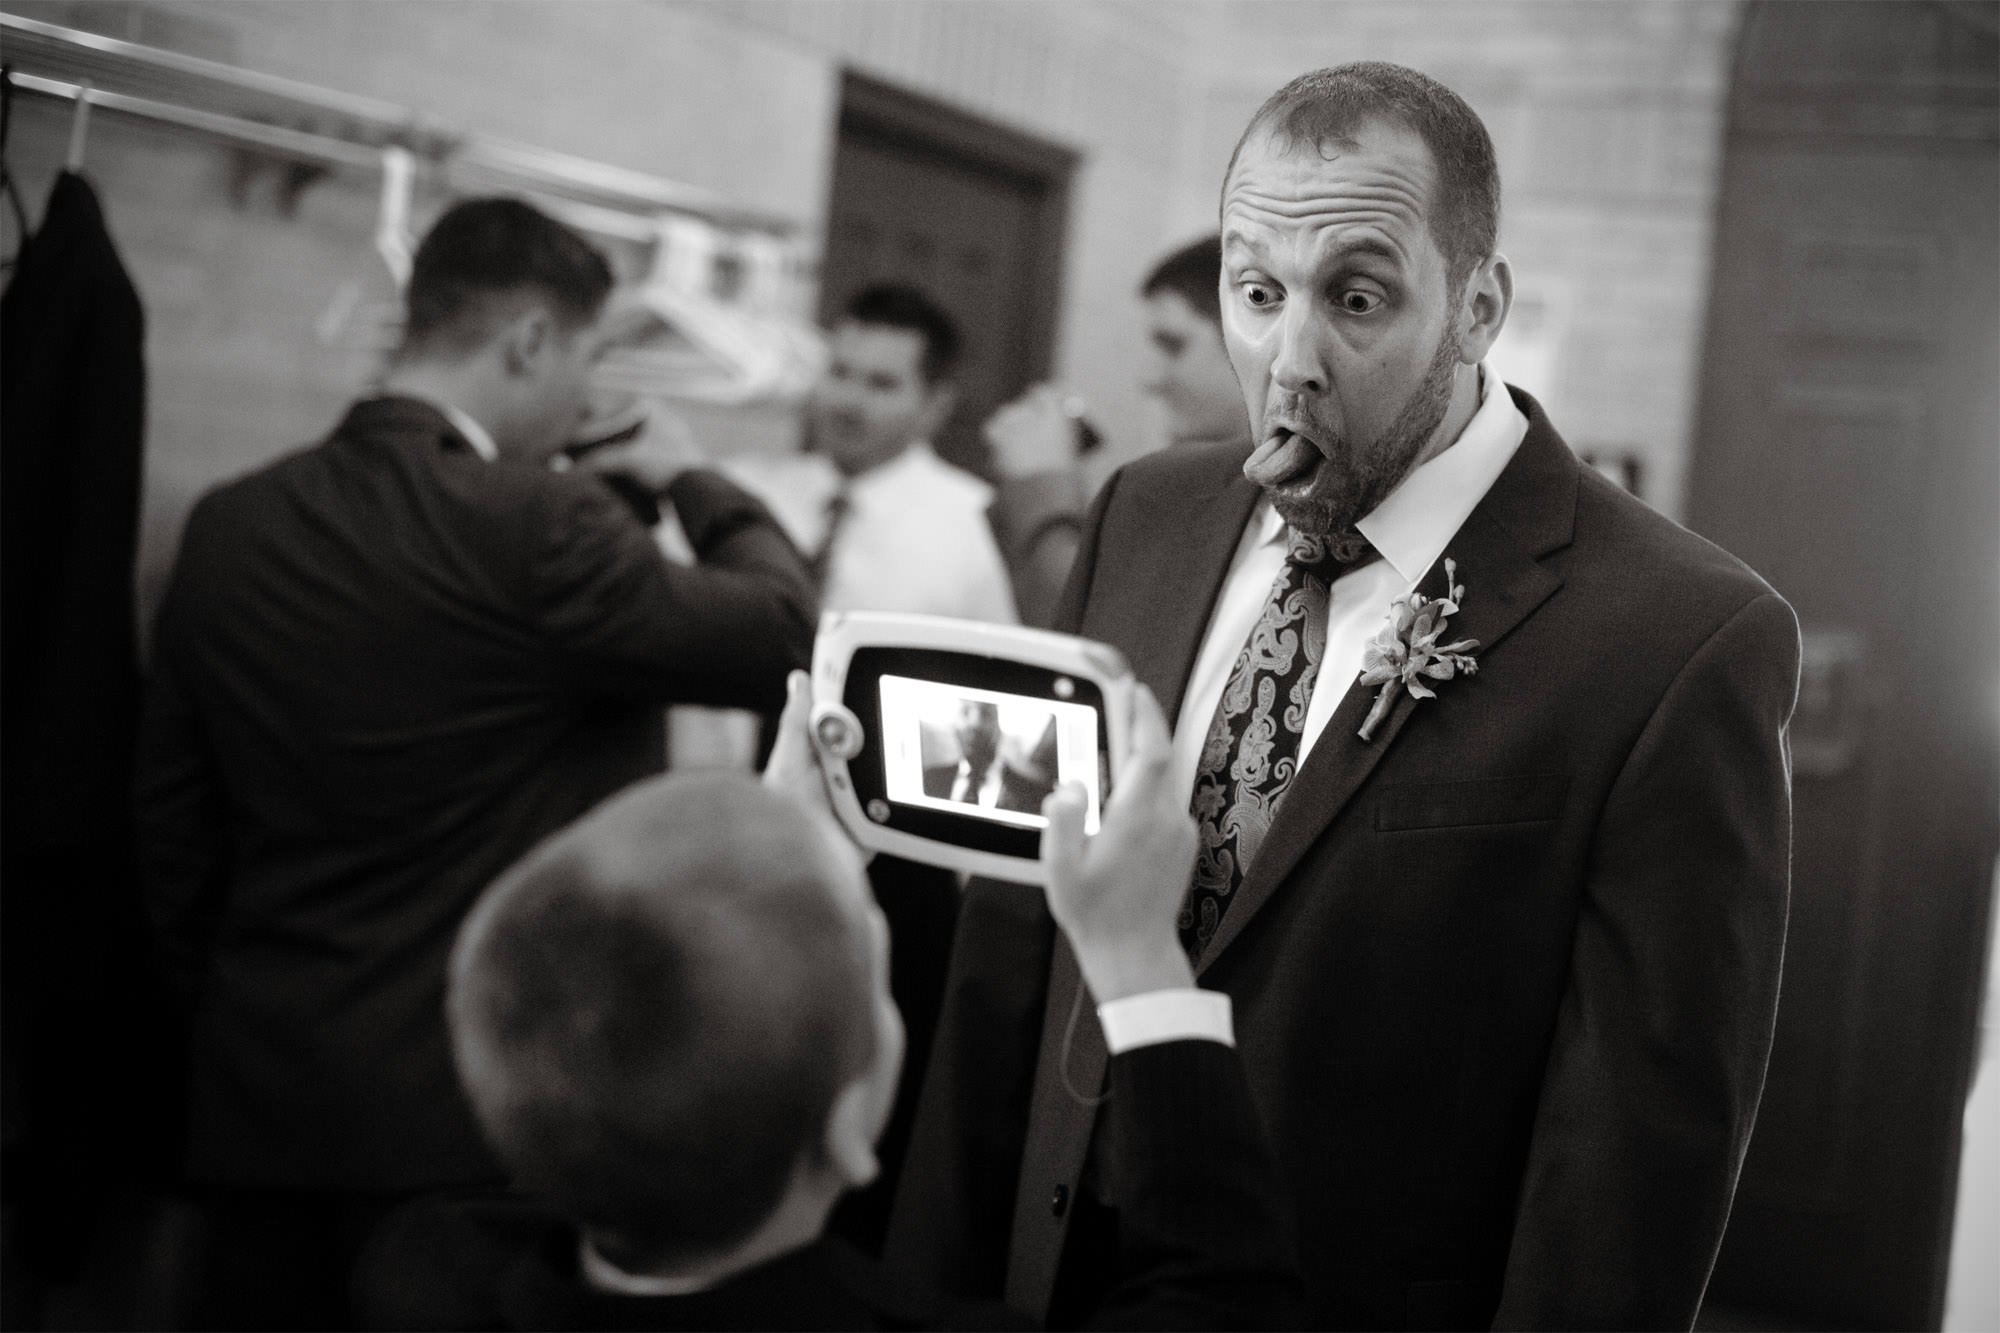 The groom makes a silly face before the wedding ceremony at St Francis Hall.